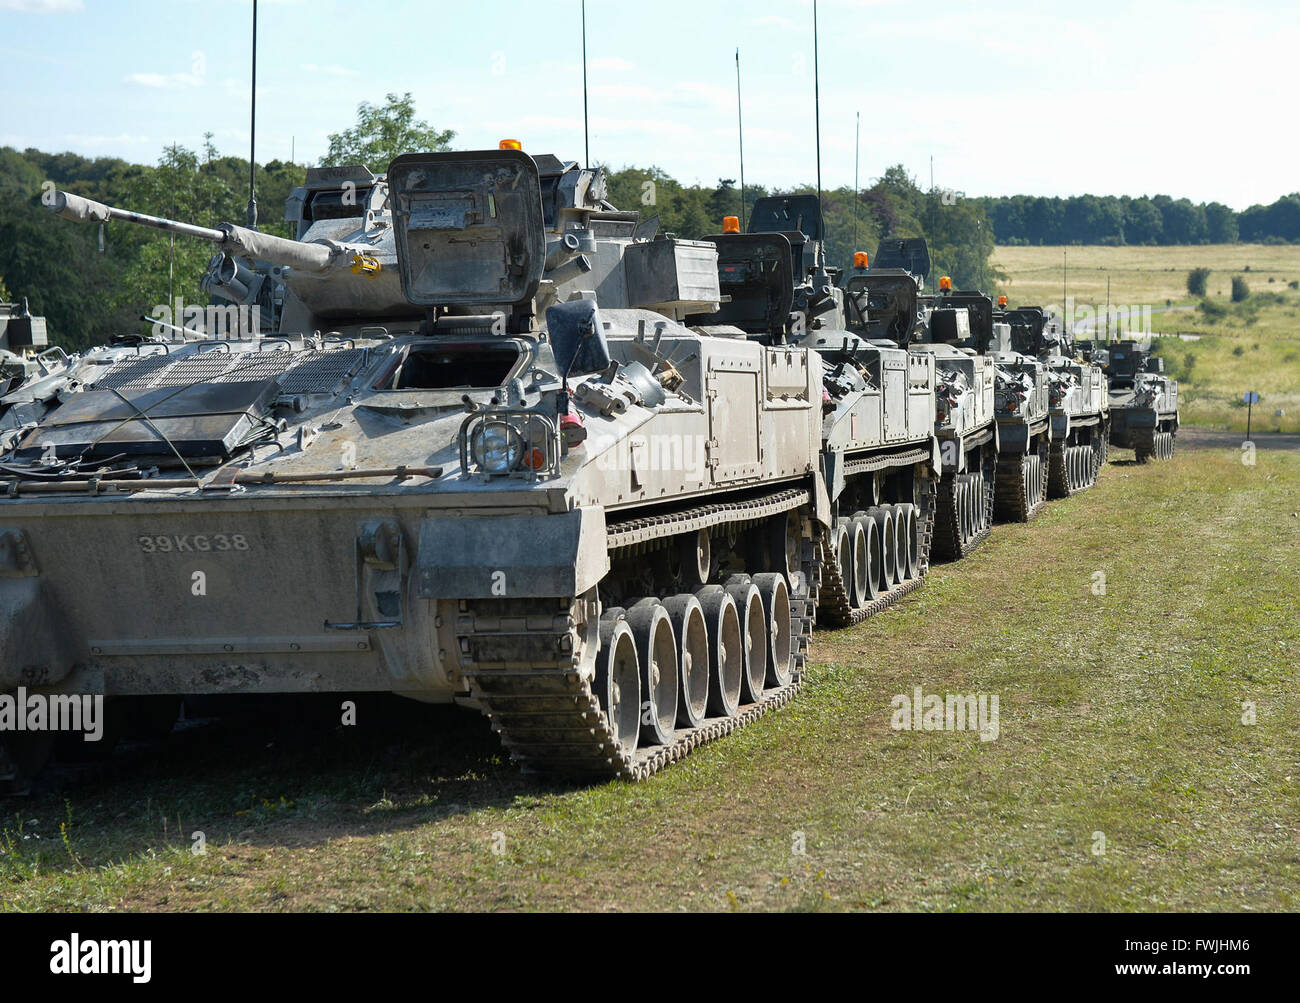 A line of Warrior vehicles wait for a call to action on Salisbury Plain during Exercise Lion Strike. Stock Photo